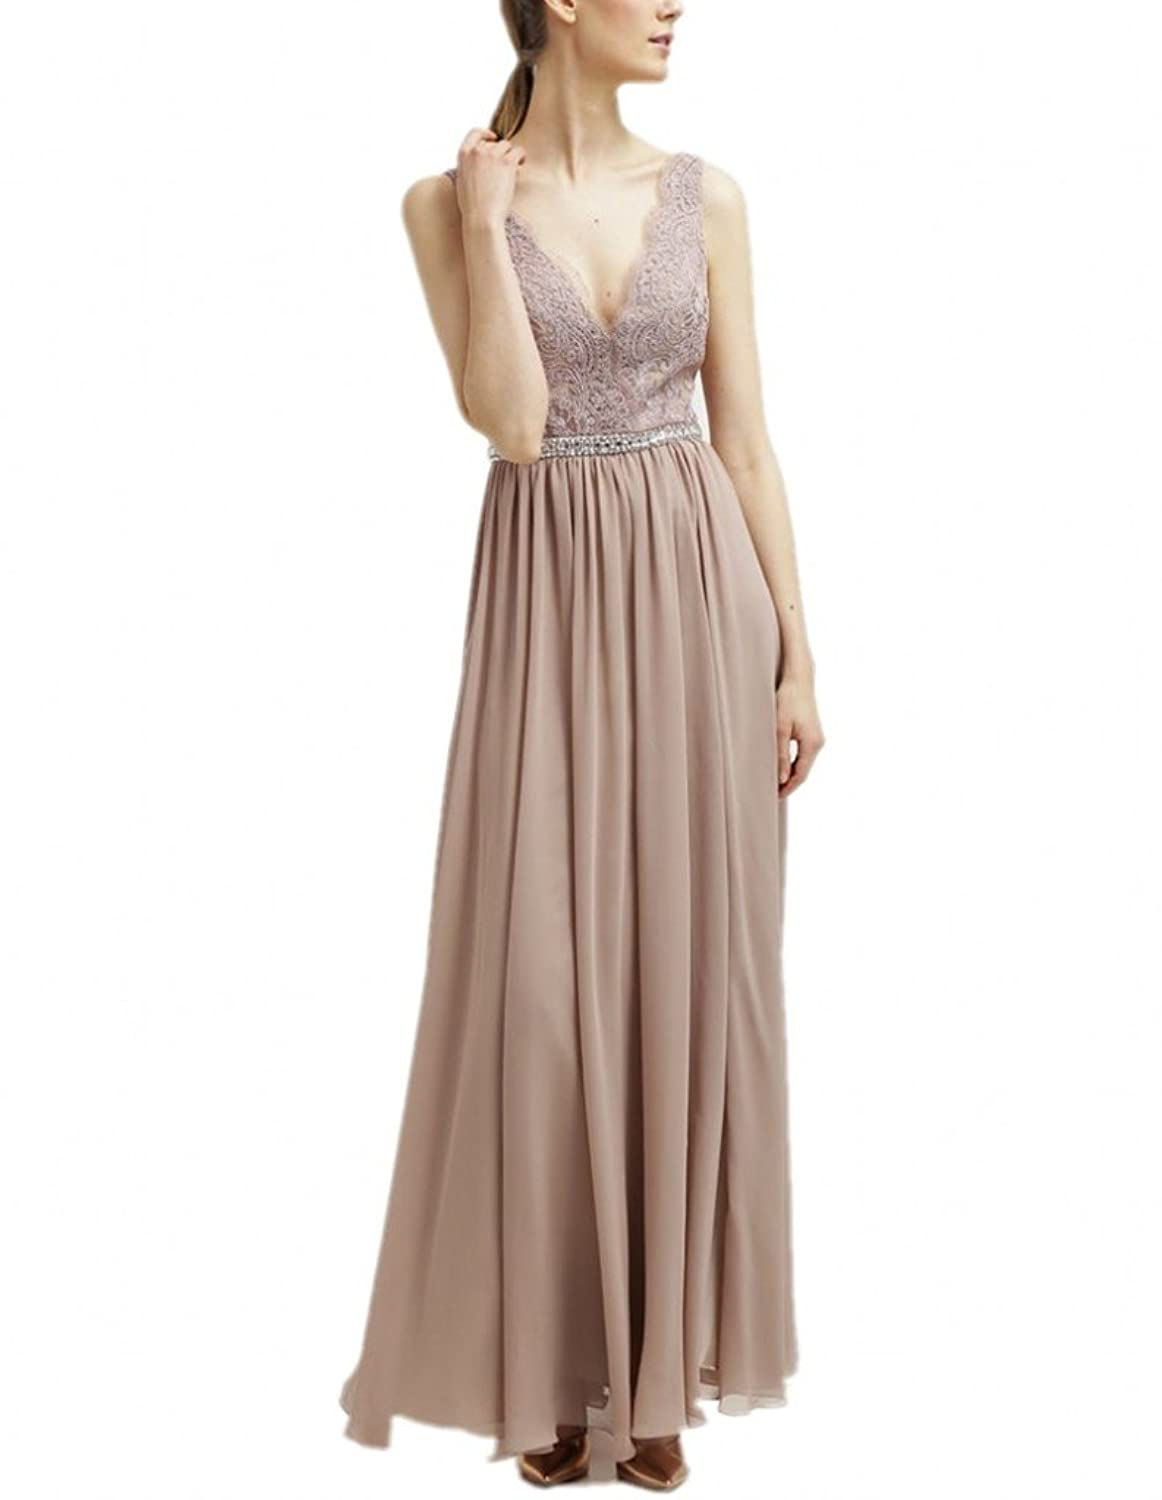 Charm Bridal Long Champagne Sexy Deep V Neck Women Evening Bridesmaid Dress